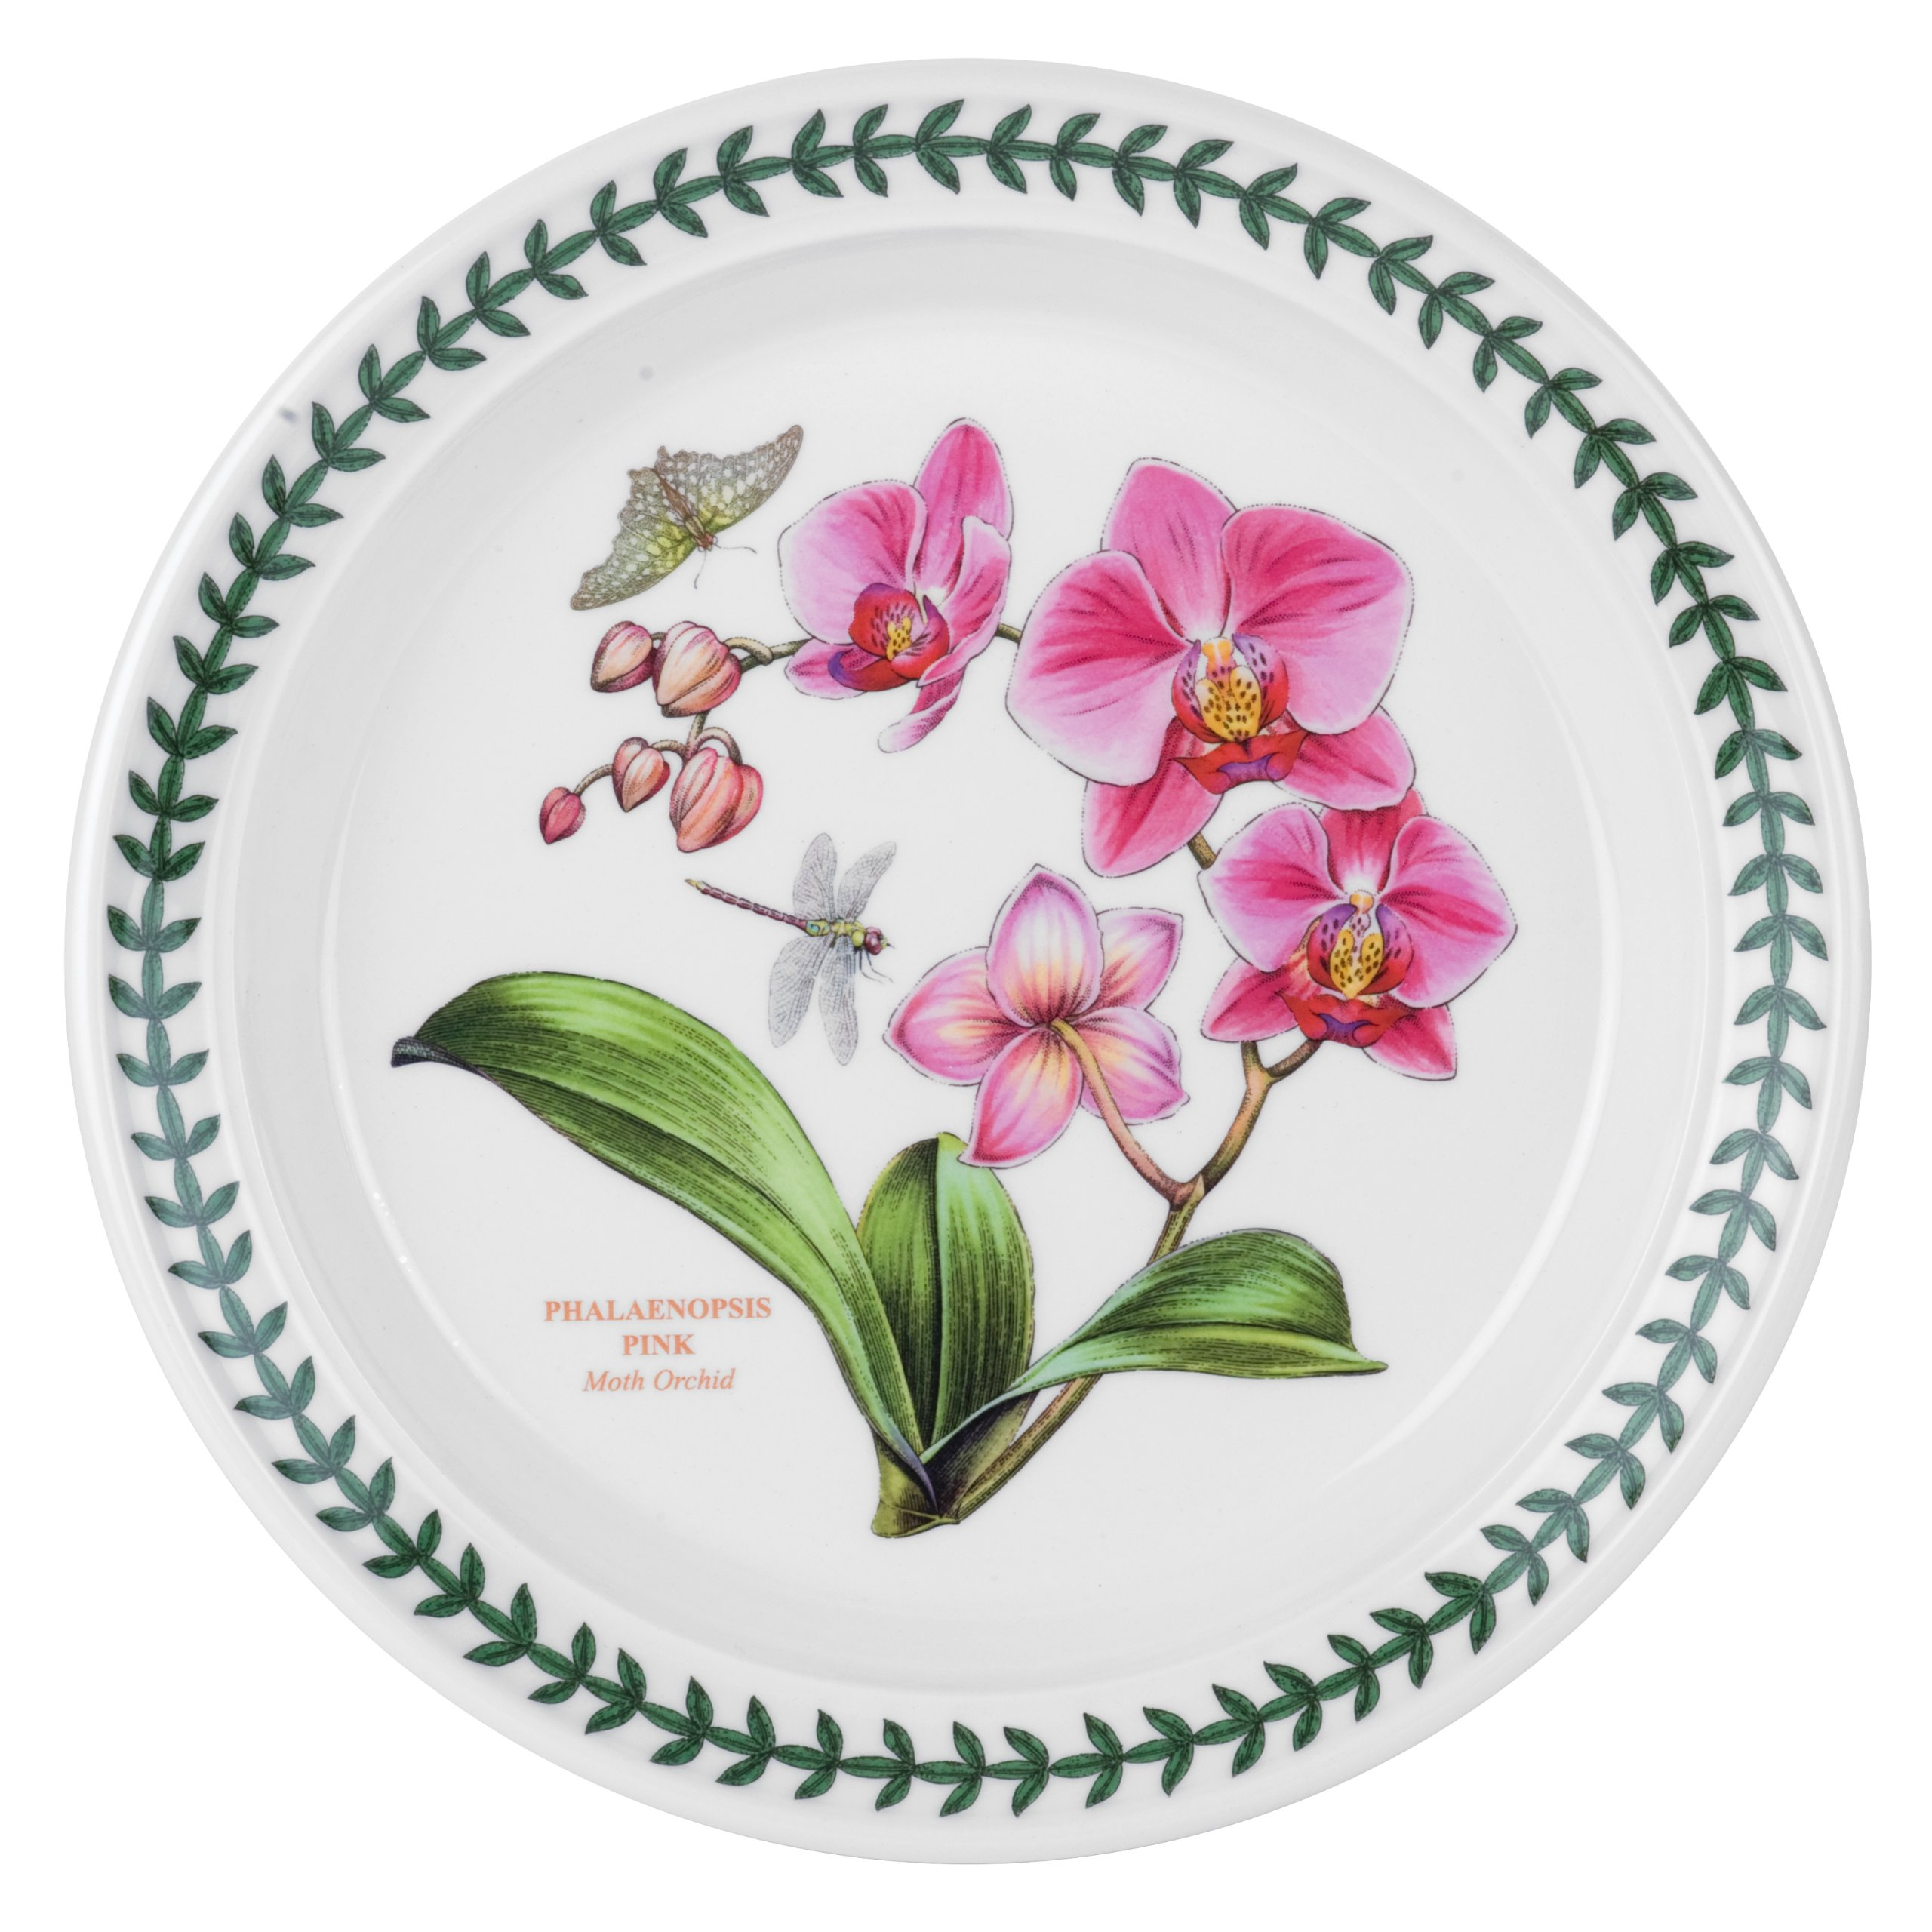 Portmeirion Exotic Botanic Garden Salad Plate with Orchid Motif, Set of 6